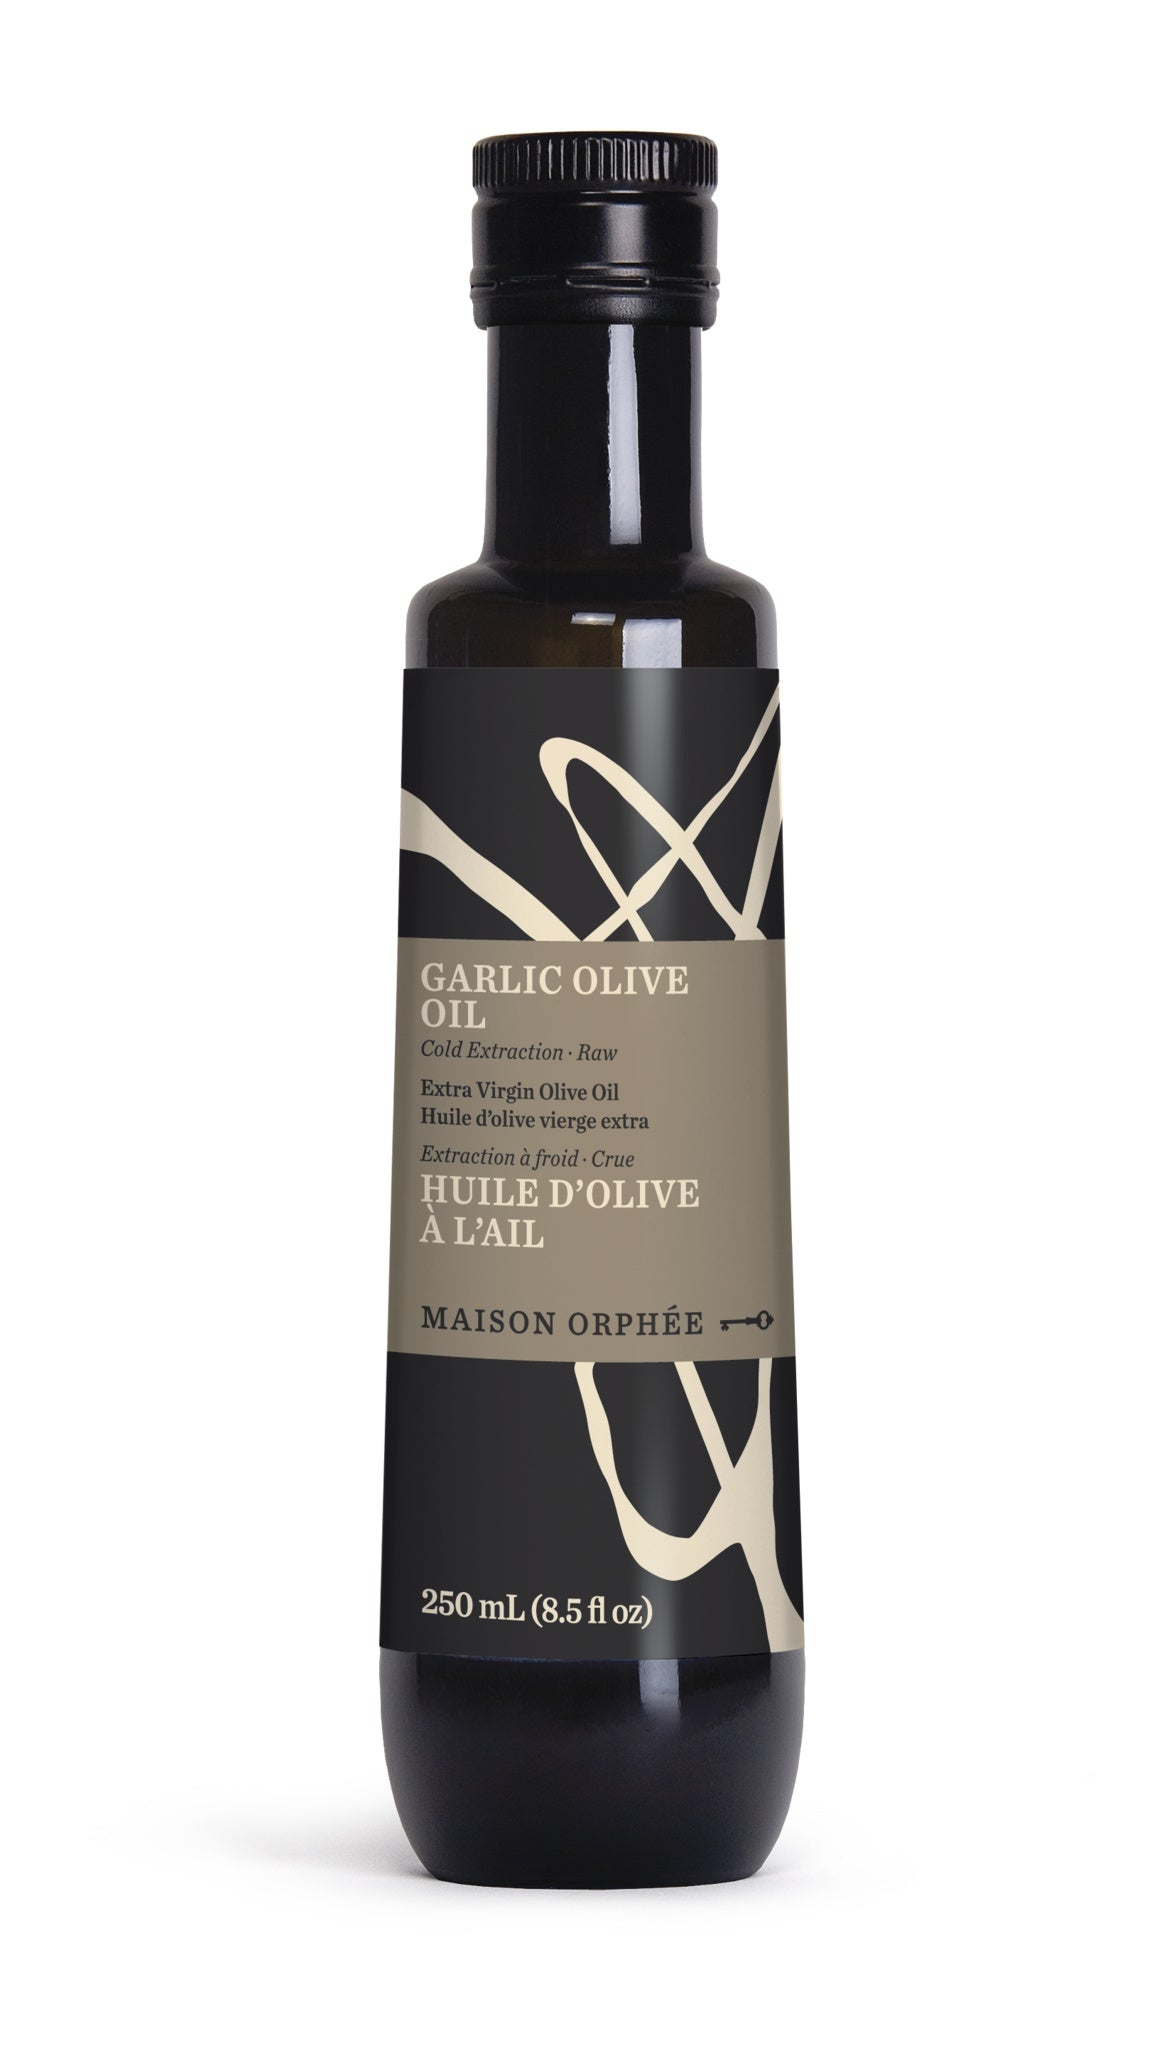 Food & Drink,Gluten Free,Non GMO - Maison Orphee - Extra Virgin Olive Oil - Garlic